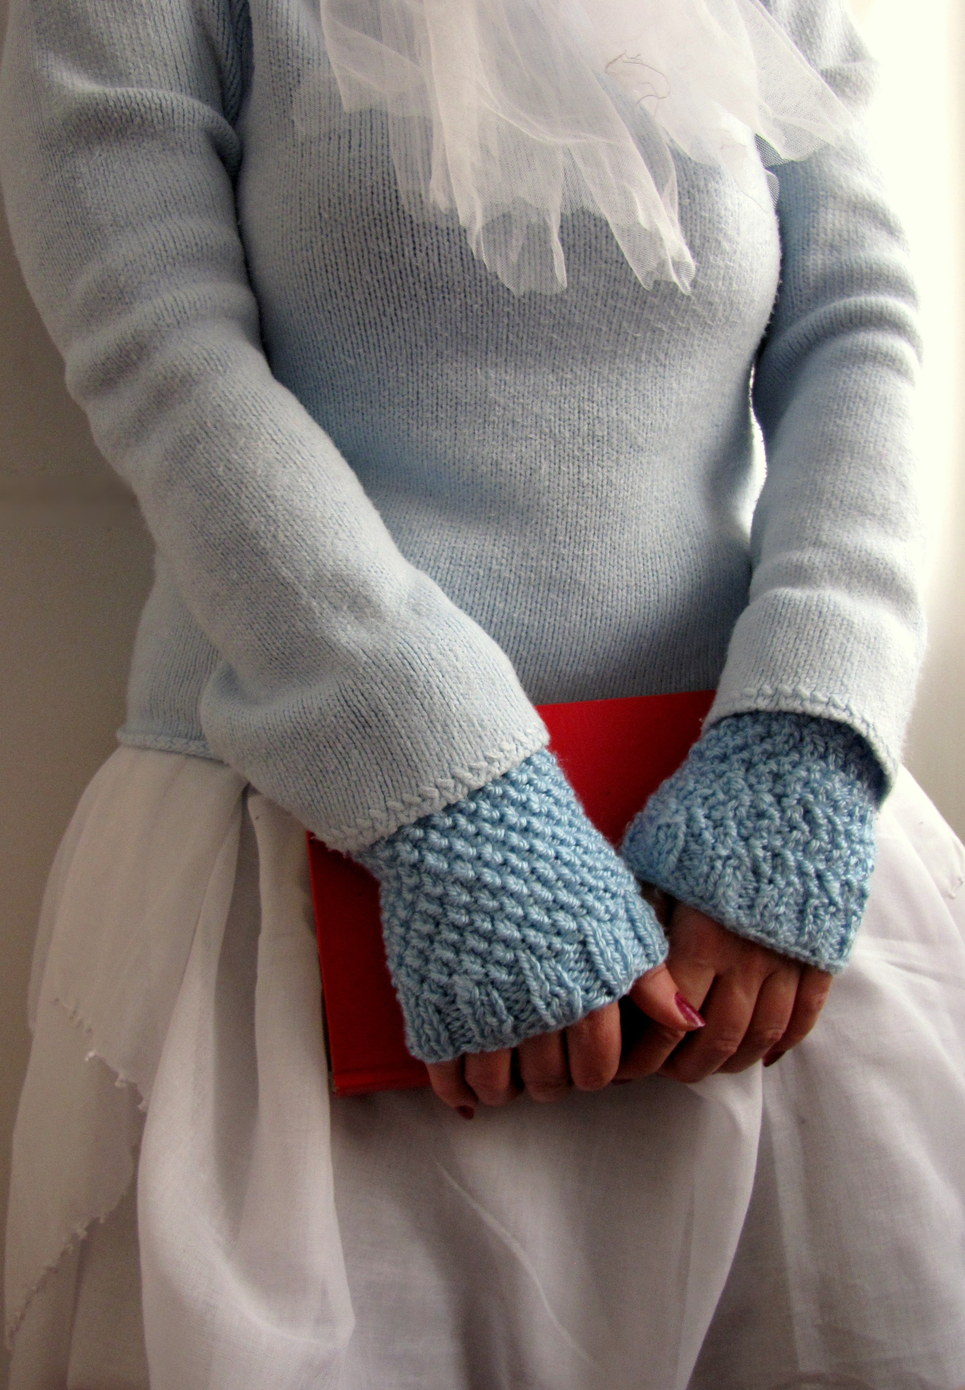 Little treasures moss stitch blue knit wrist warmers free little treasures moss stitch blue knit wrist warmers free pattern knit it up pinterest moss stitch wrist warmers and free pattern bankloansurffo Image collections